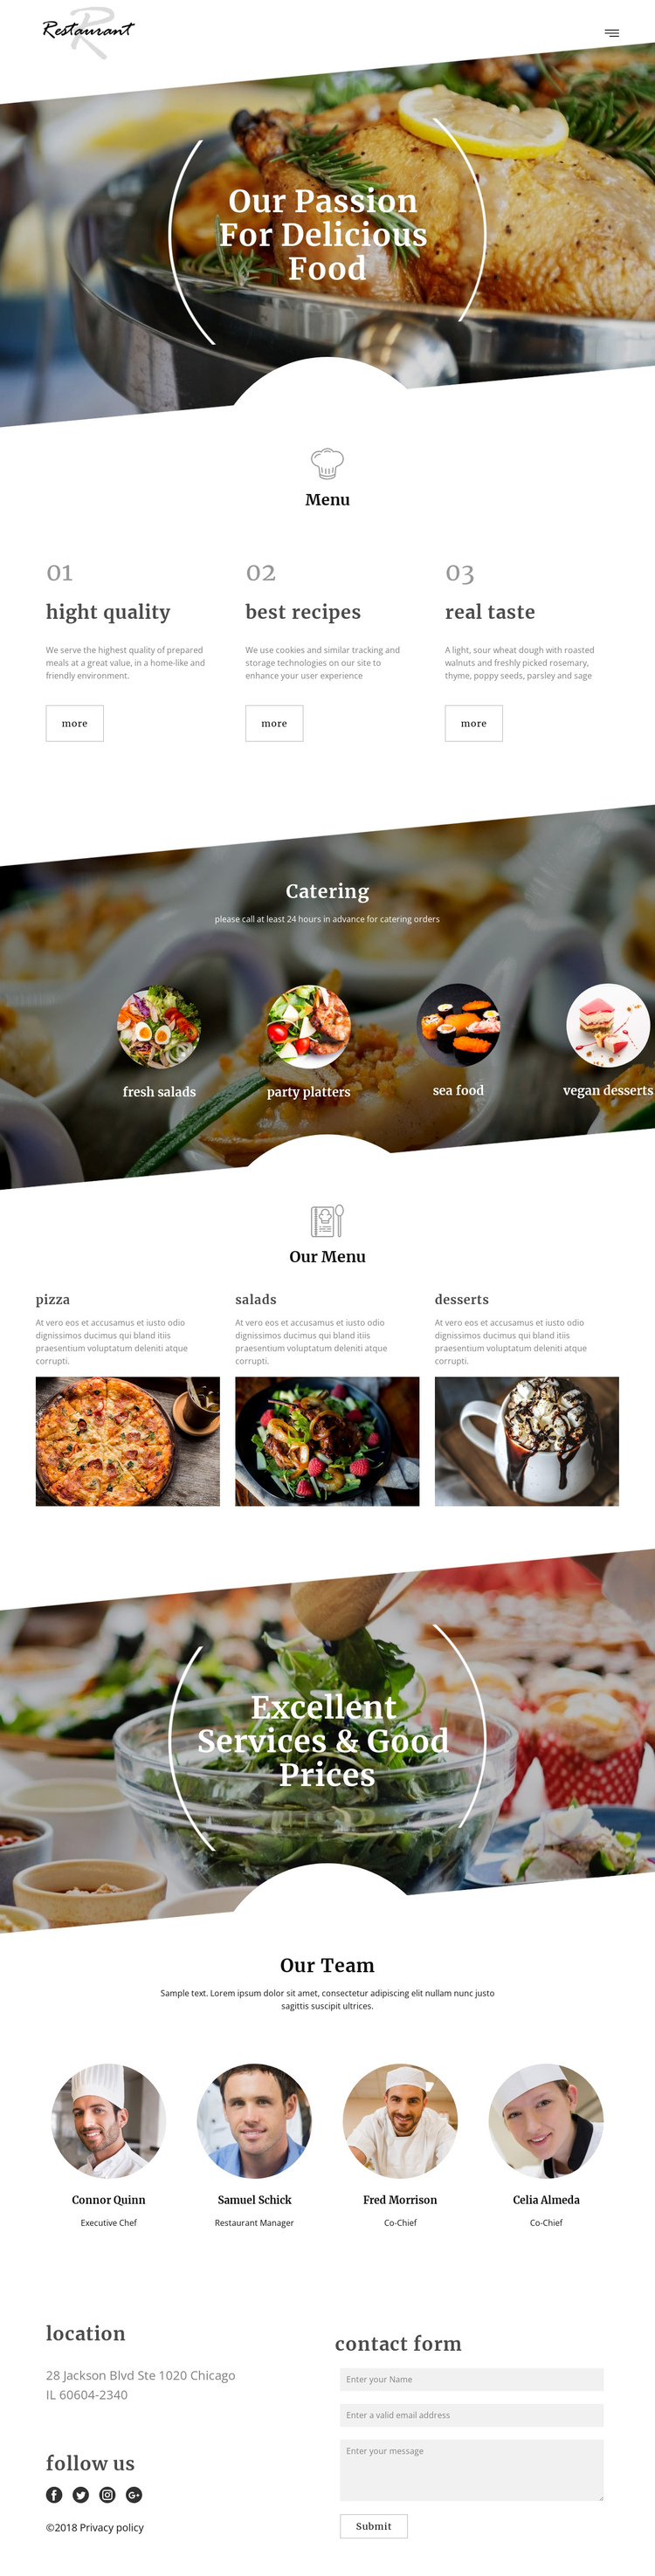 Executive chef recipes Website Builder Software